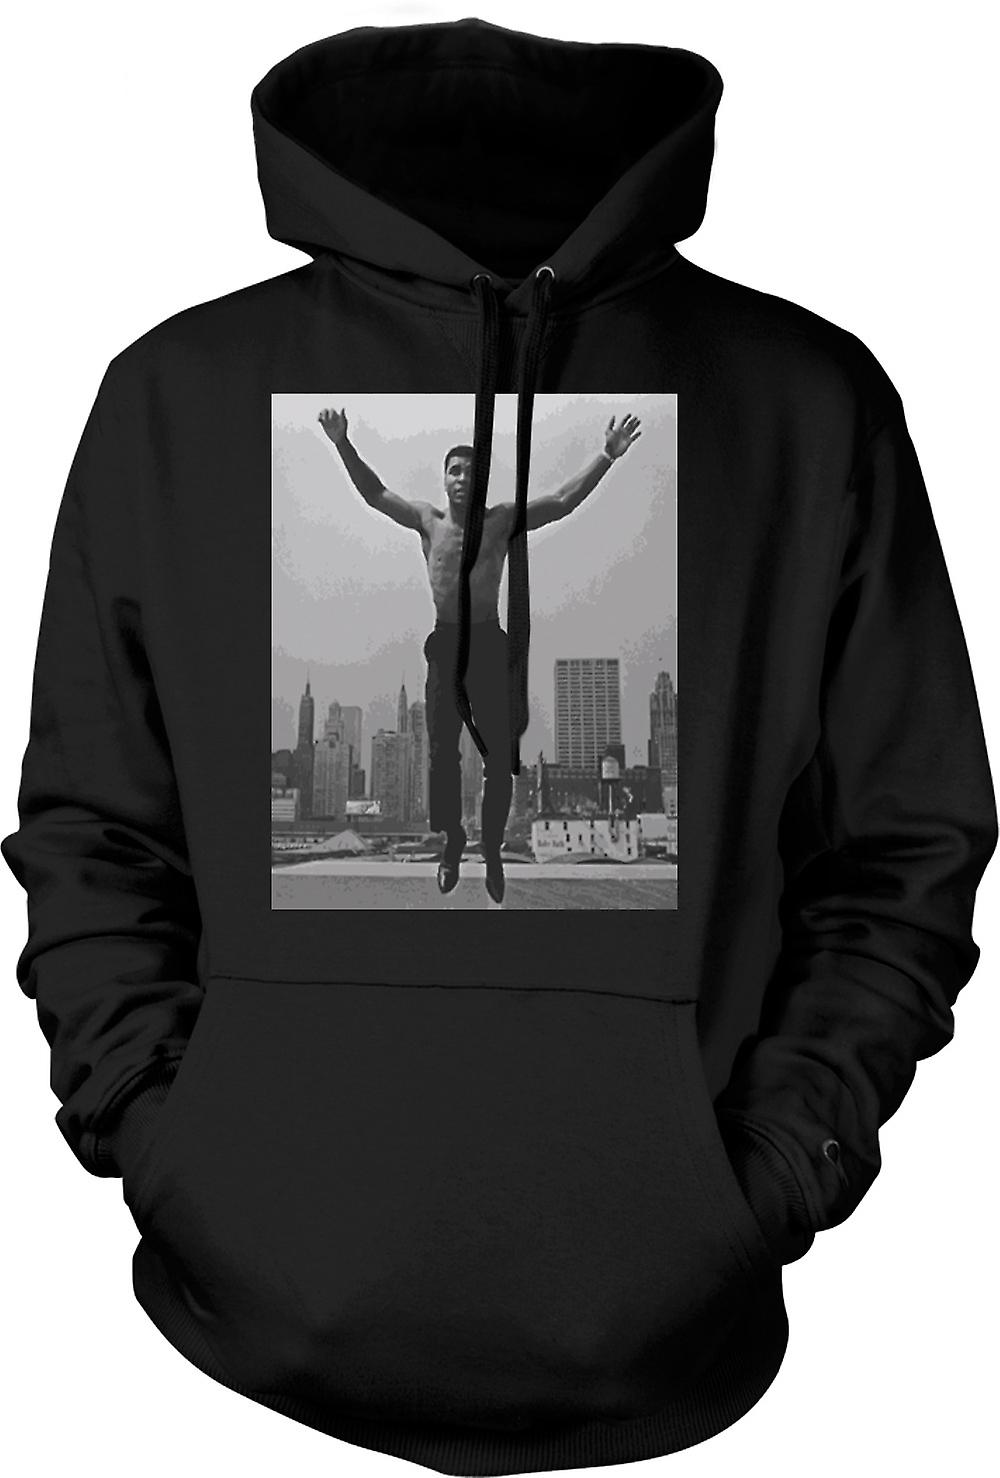 Mens Hoodie - Ali Jumping Shirt Off